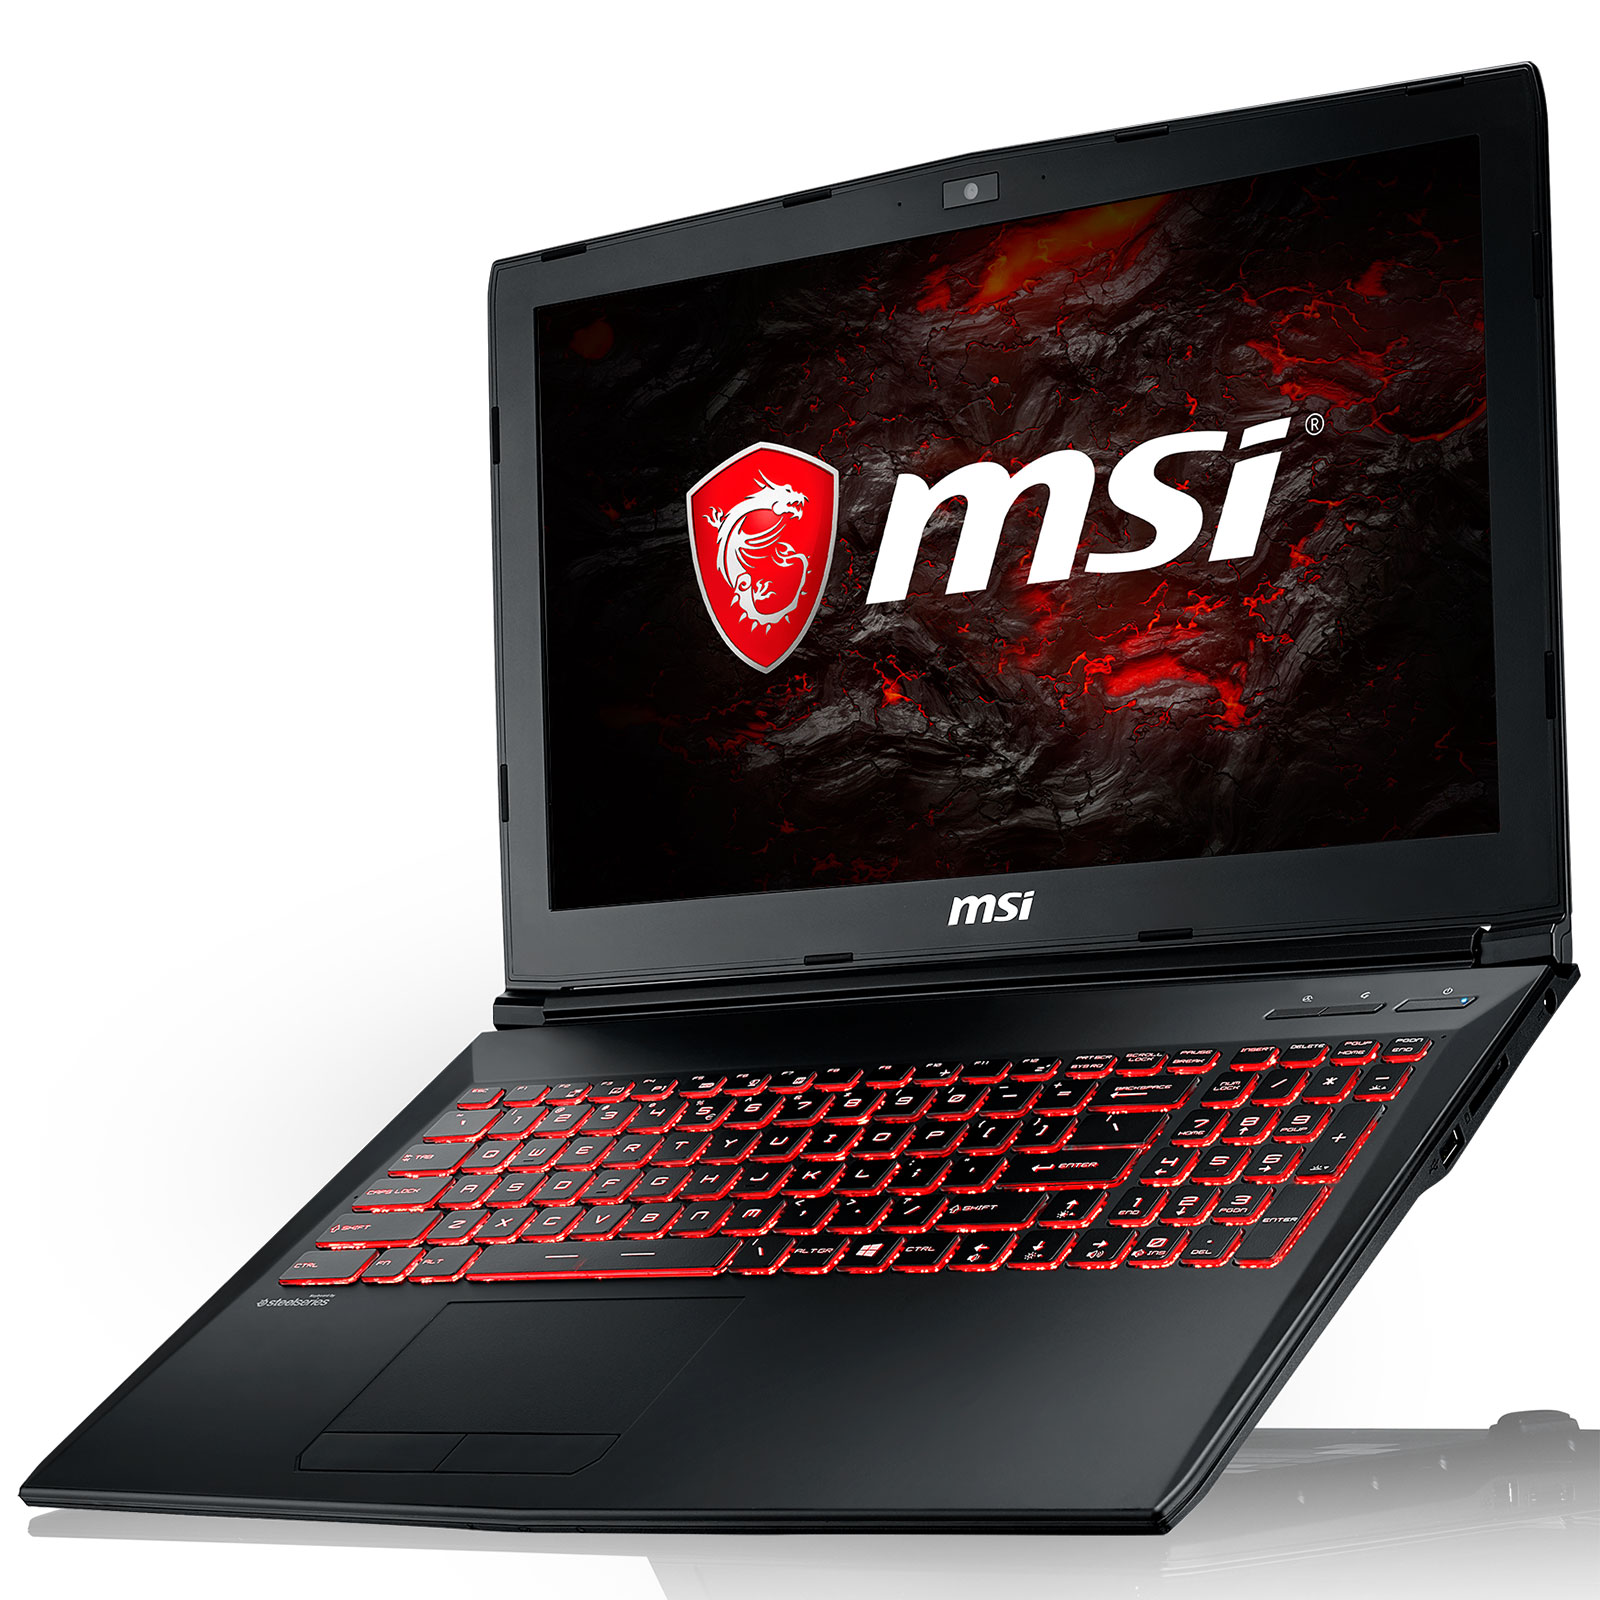 "PC portable MSI GL62M 7RDX-2231FR Intel Core i5-7300HQ 8 Go SSD 128 Go + HDD 1 To 15.6"" LED Full HD NVIDIA GeForce GTX 1050 4 Go Wi-Fi AC/Bluetooth Webcam Windows 10 Famille 64 bits (garantie constructeur 2 ans)"